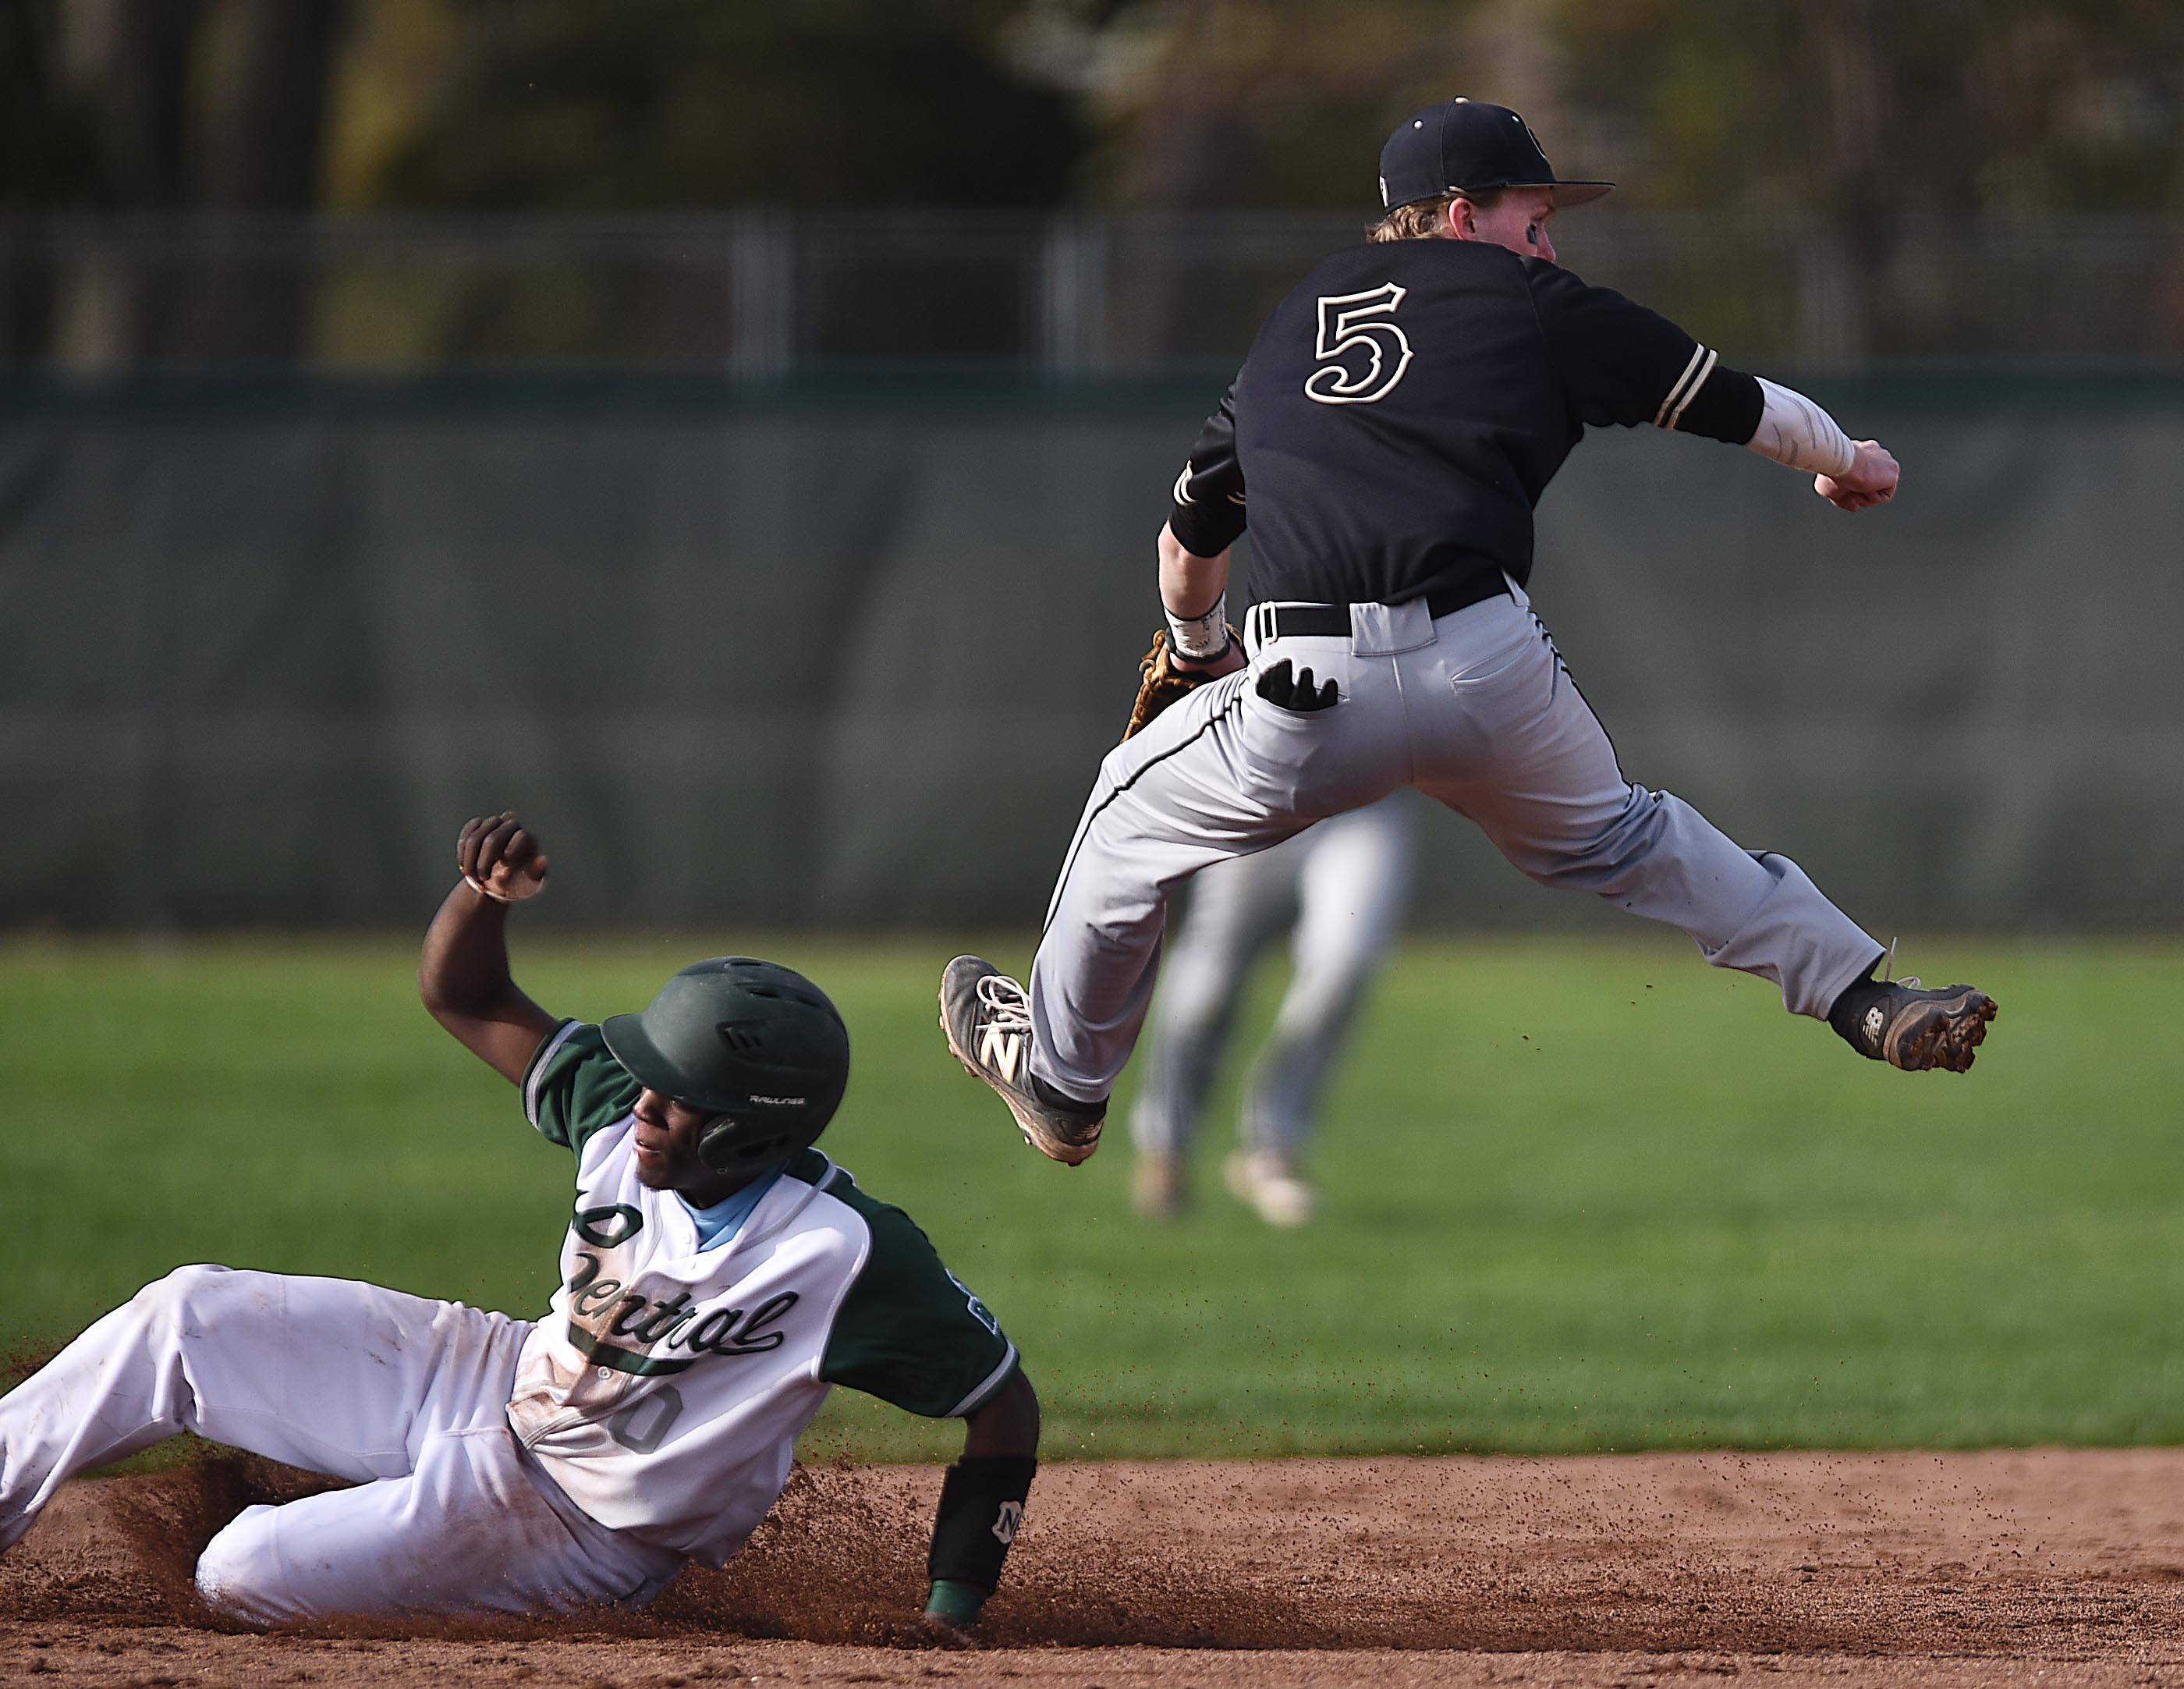 Grayslake Central pinch runner Xavier Hunter is forced out by Grayslake North's Declan Peterson, who leaps over him and completes the double play to end the second inning Friday at Grayslake Central.